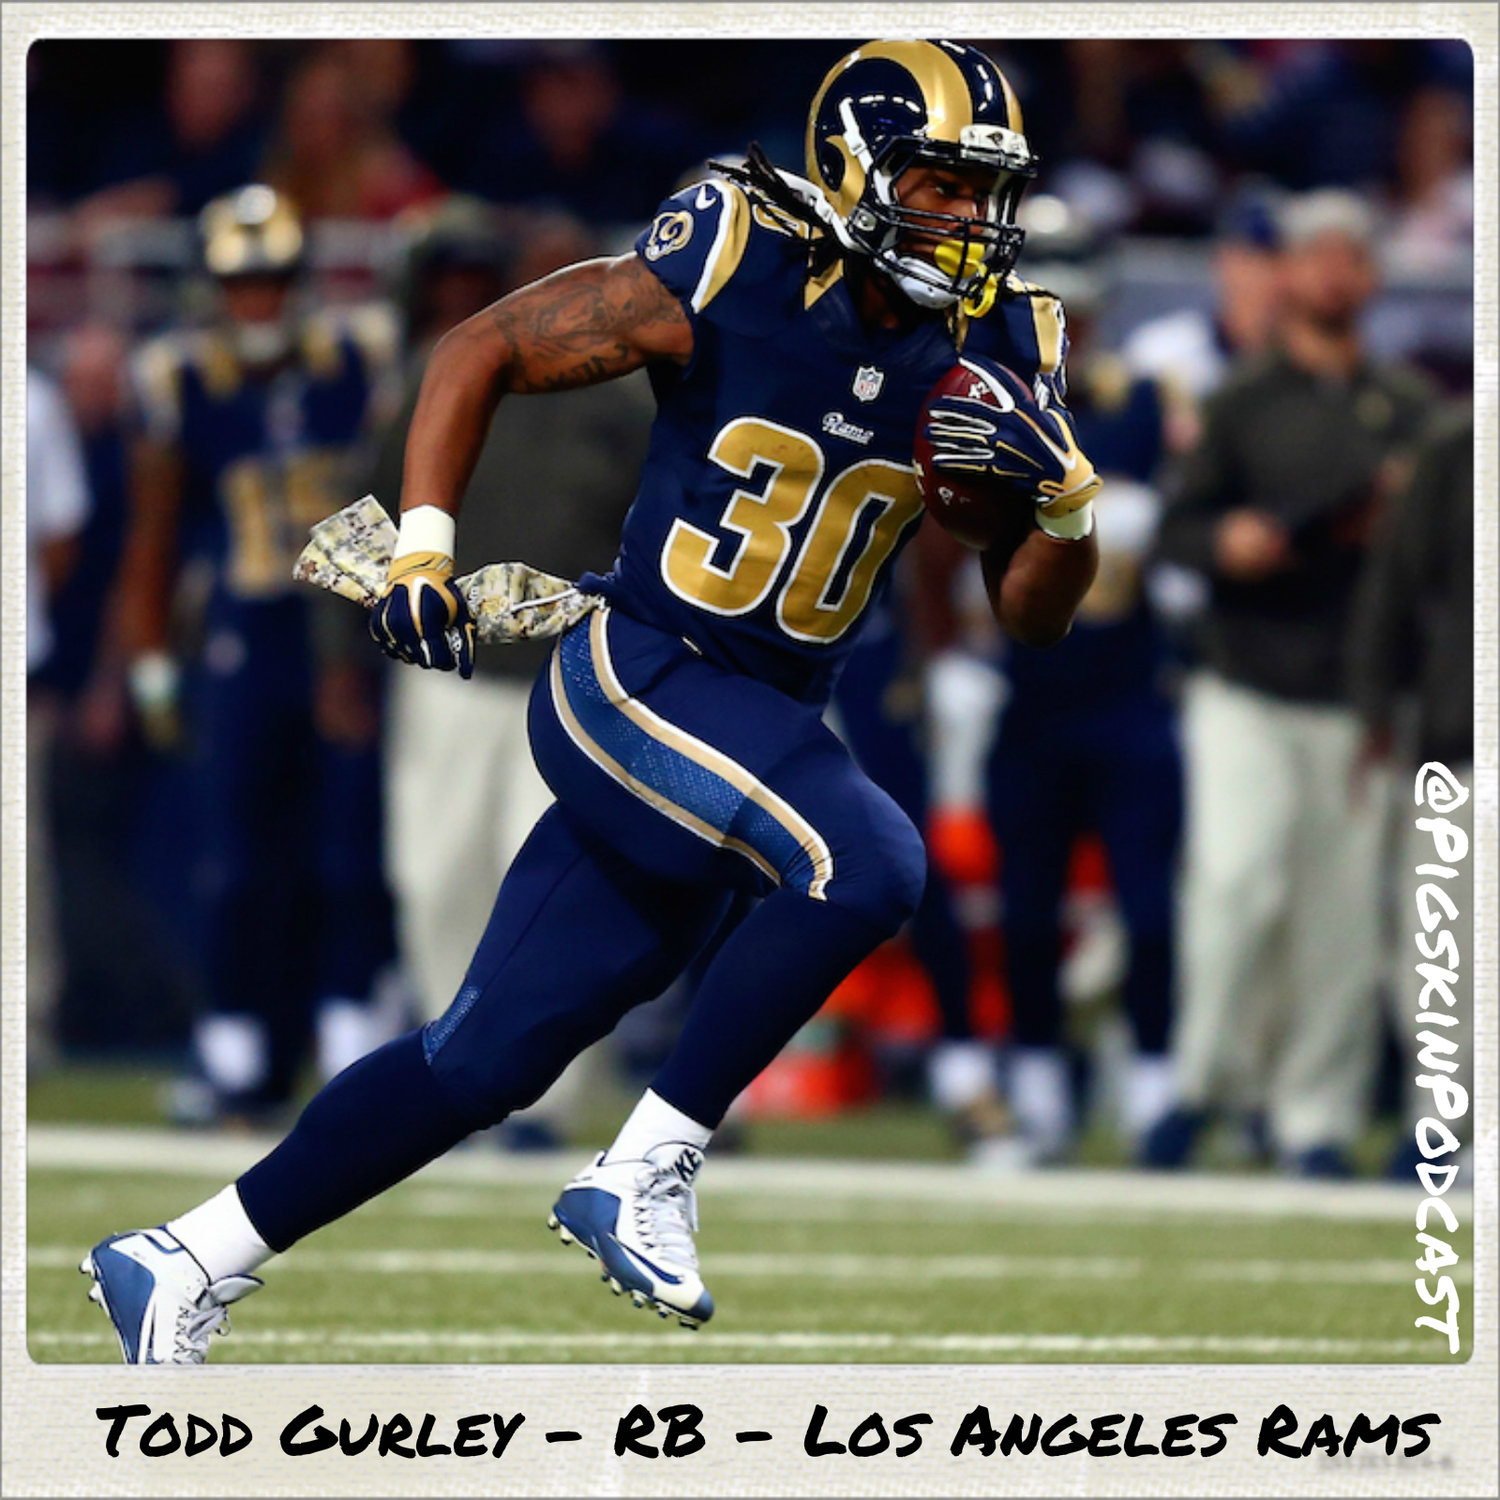 huge discount 87814 1f61d As bad as Lamar Miller was last season, another first round running back  performed even worse - Todd Gurley. Gurley was part of the worst offense in  the NFL ...